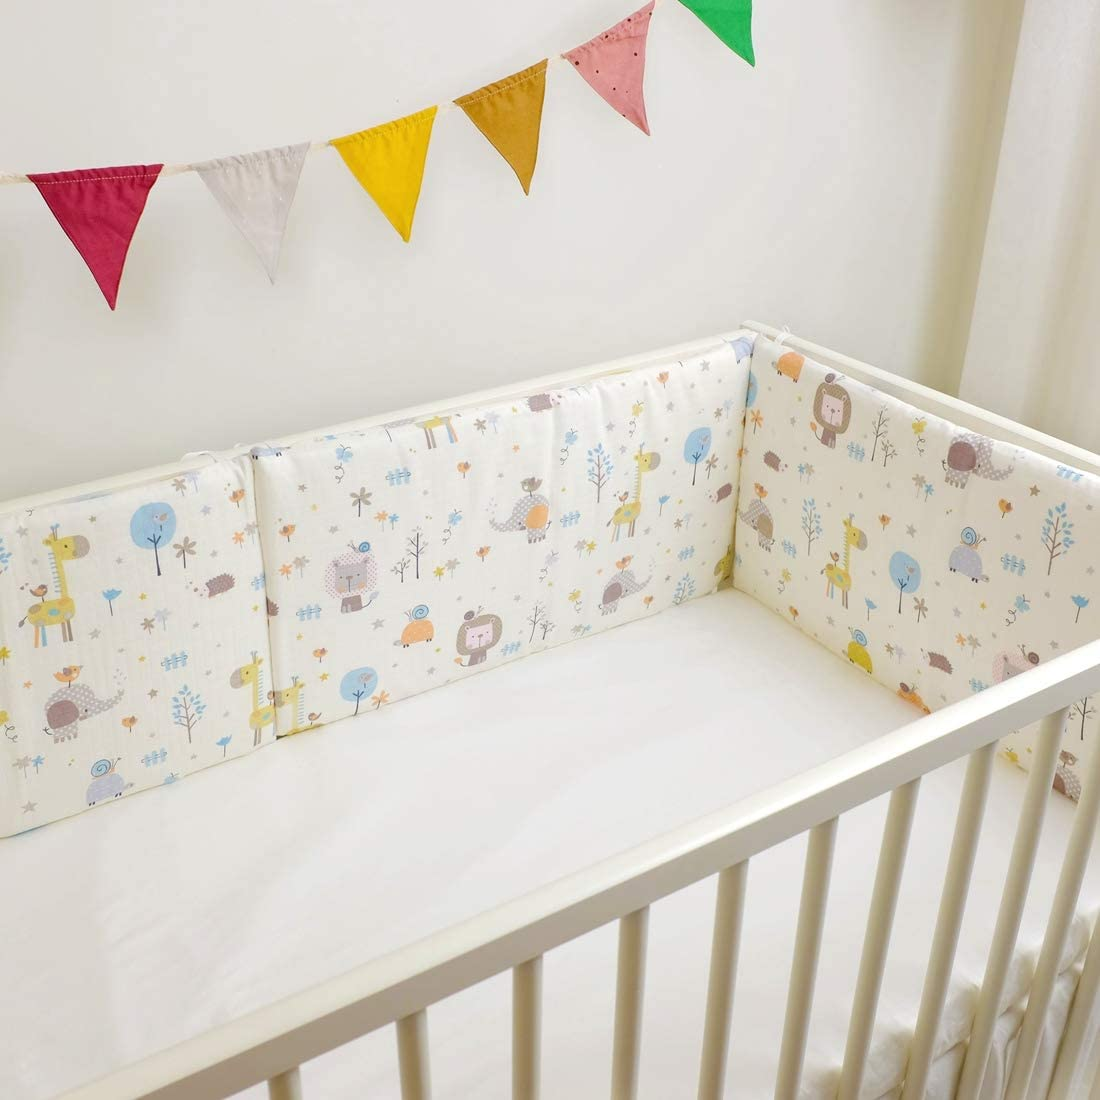 23.62 inches Cartoon Animal Pattern Surrui Cot Bumper Durable Baby Bedding Bumpers with Tiebacks Crib Bumper Removeable Washable Safer Crib Sided Bumpers Bedding 3Pcs Sets 30 60cm//11.81